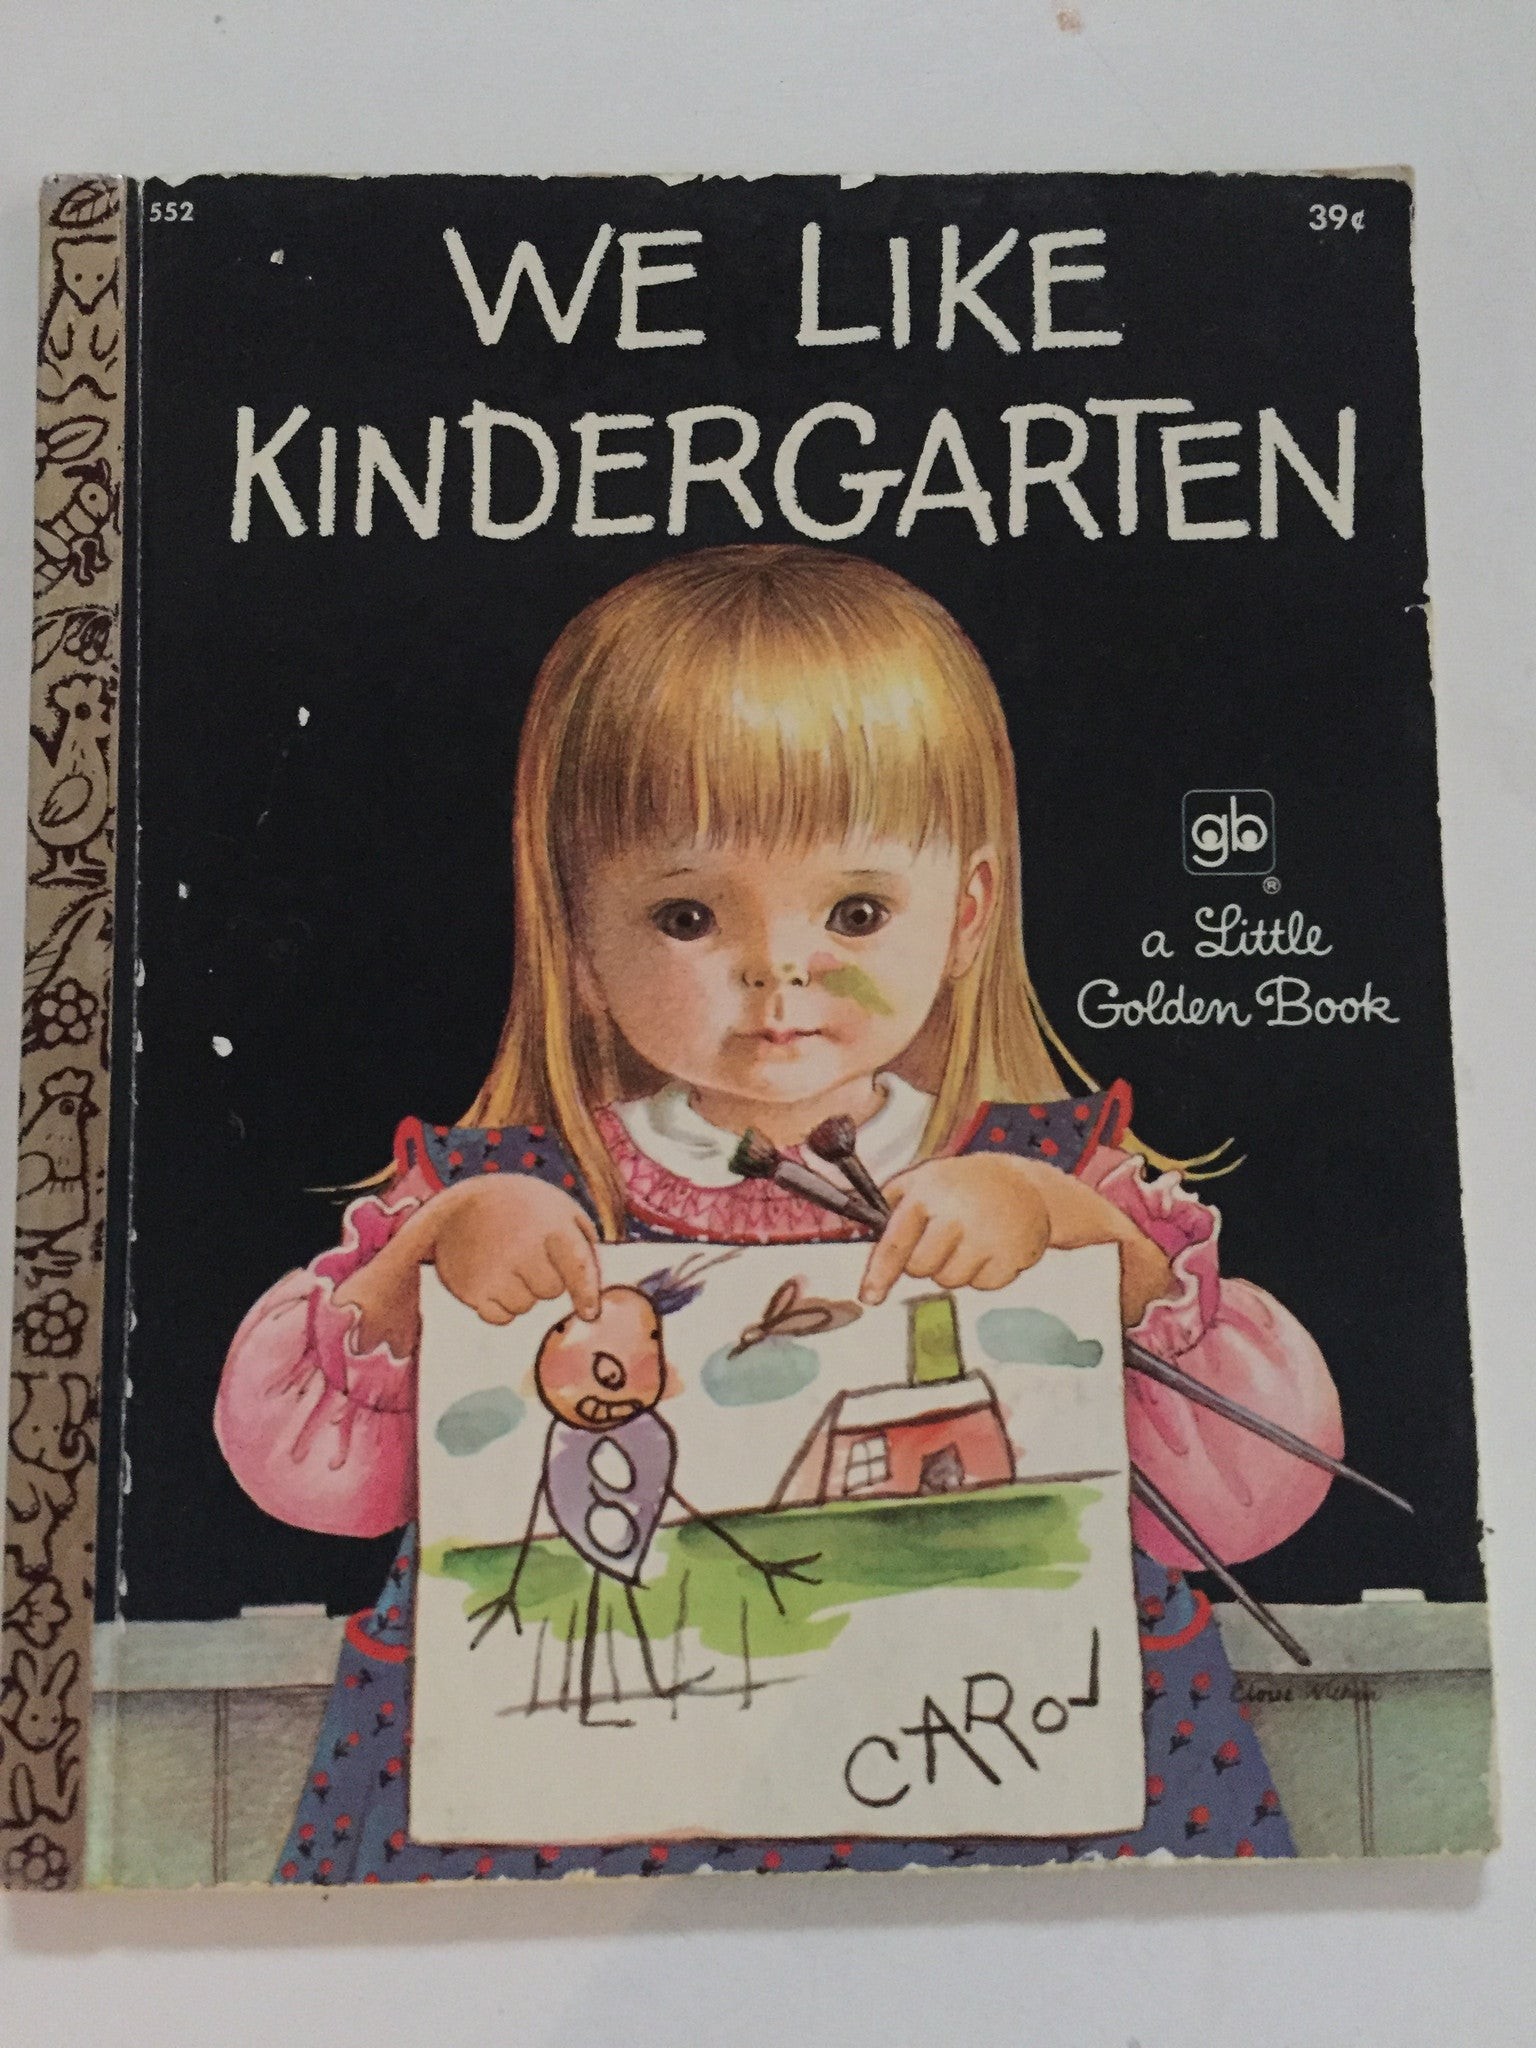 We Like Kindergarten - Slickcatbooks